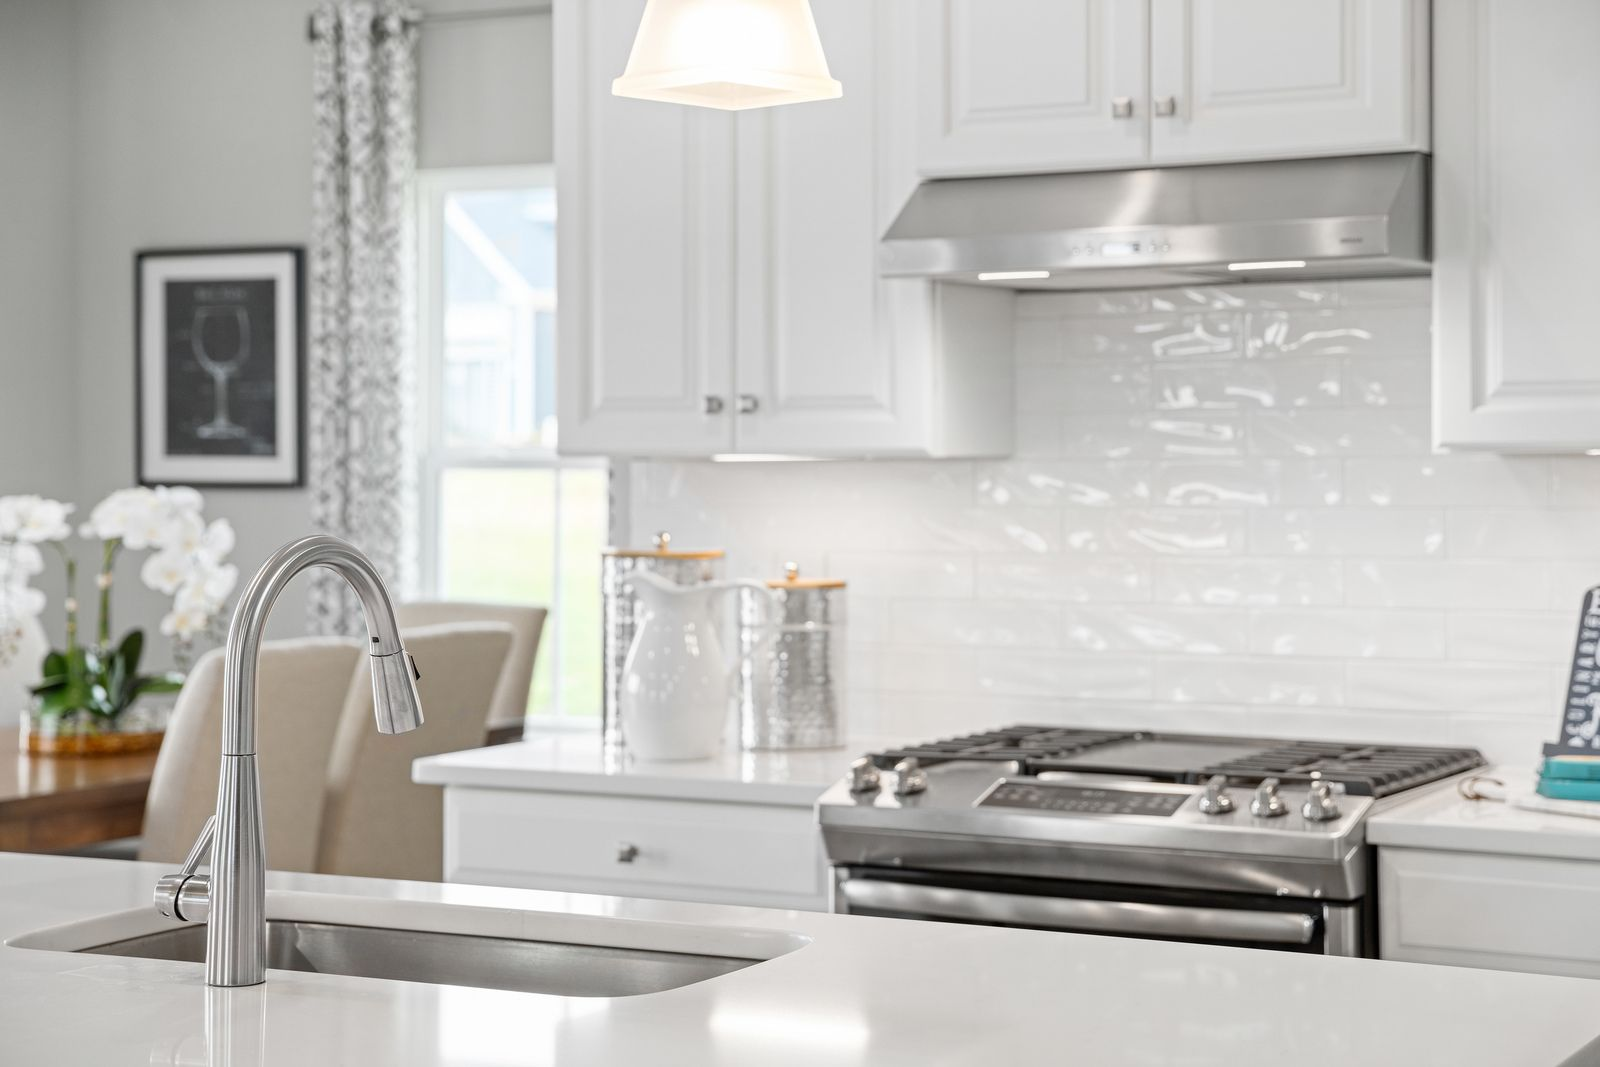 Kitchen featured in the Columbia By Ryan Homes in York, PA